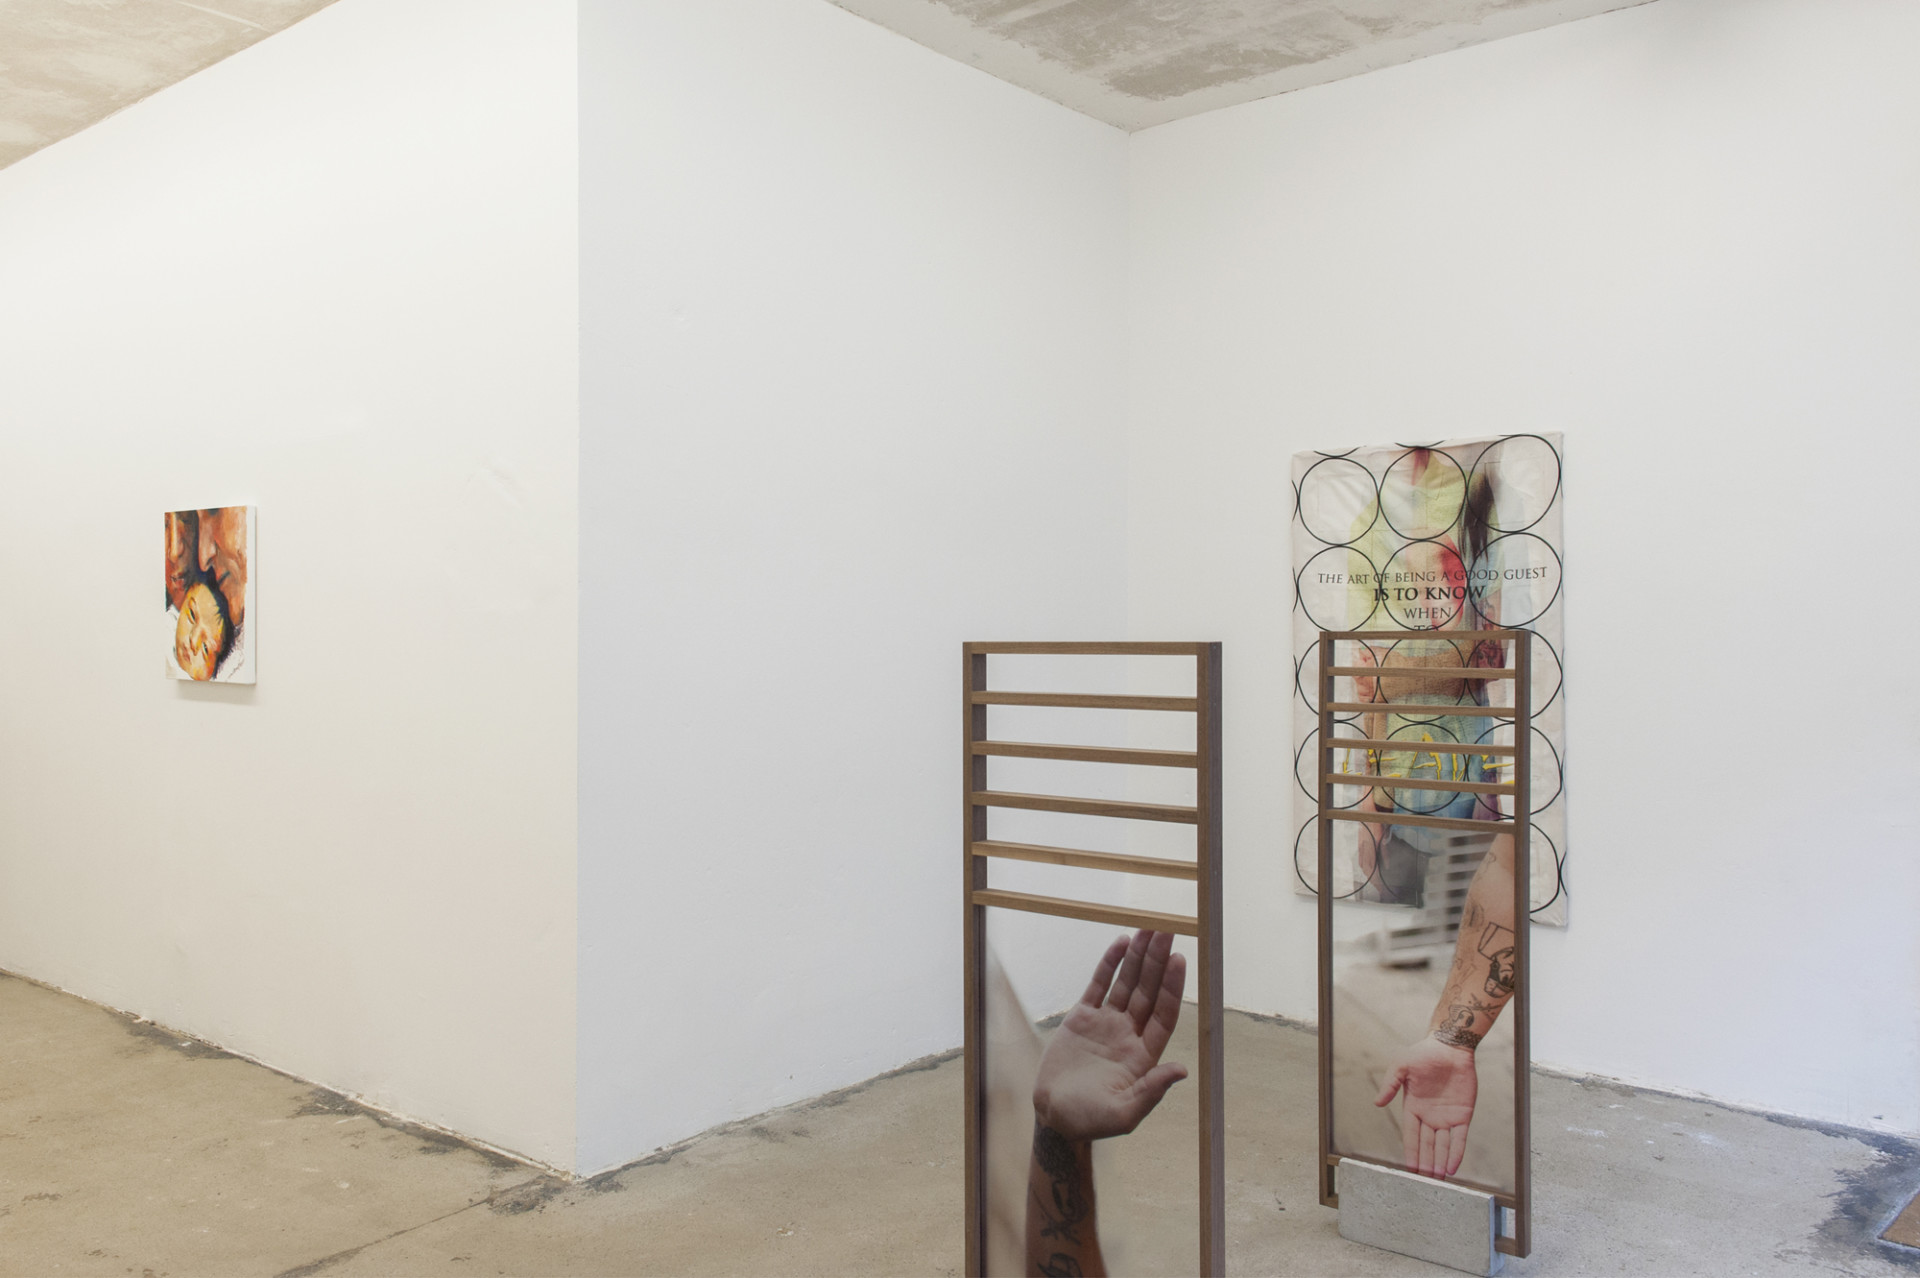 lucashirsch.com Philipp Timischl, Aude Pariset, Nolan Simon – You Never Actually Own Anything